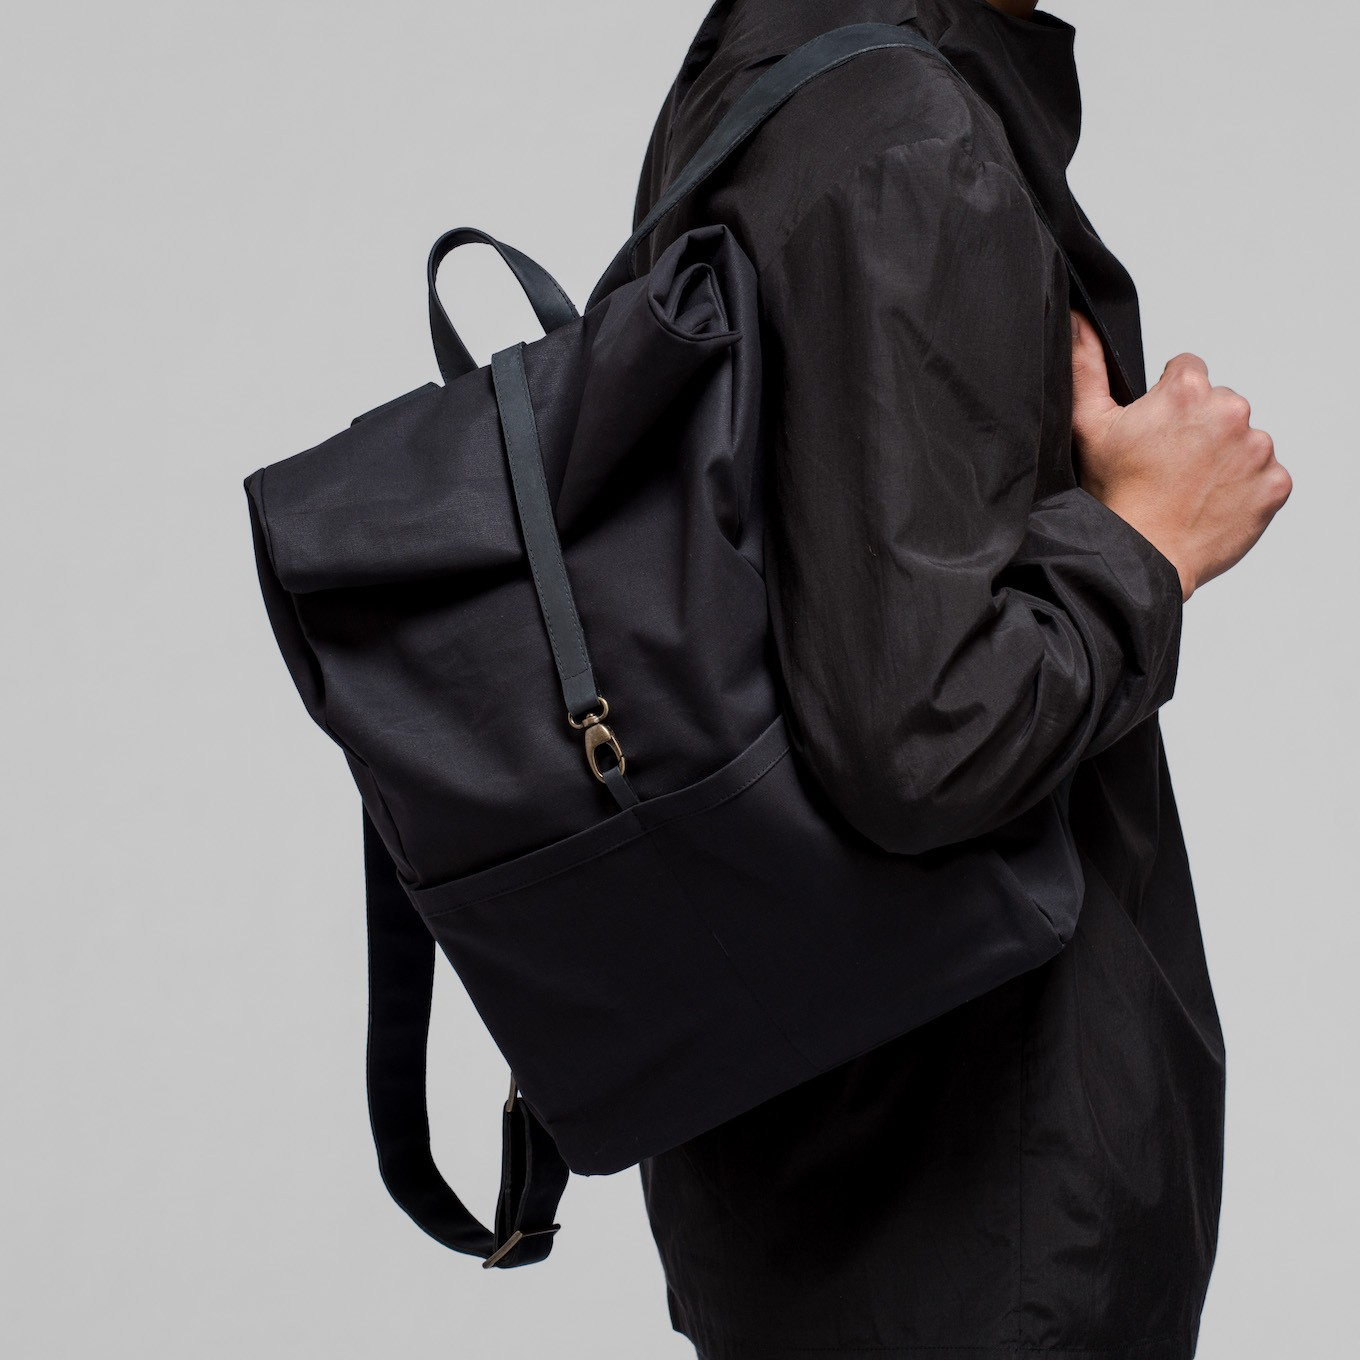 76_Backpack-Coated- Cotton-Leather-Integrated Laptop Case